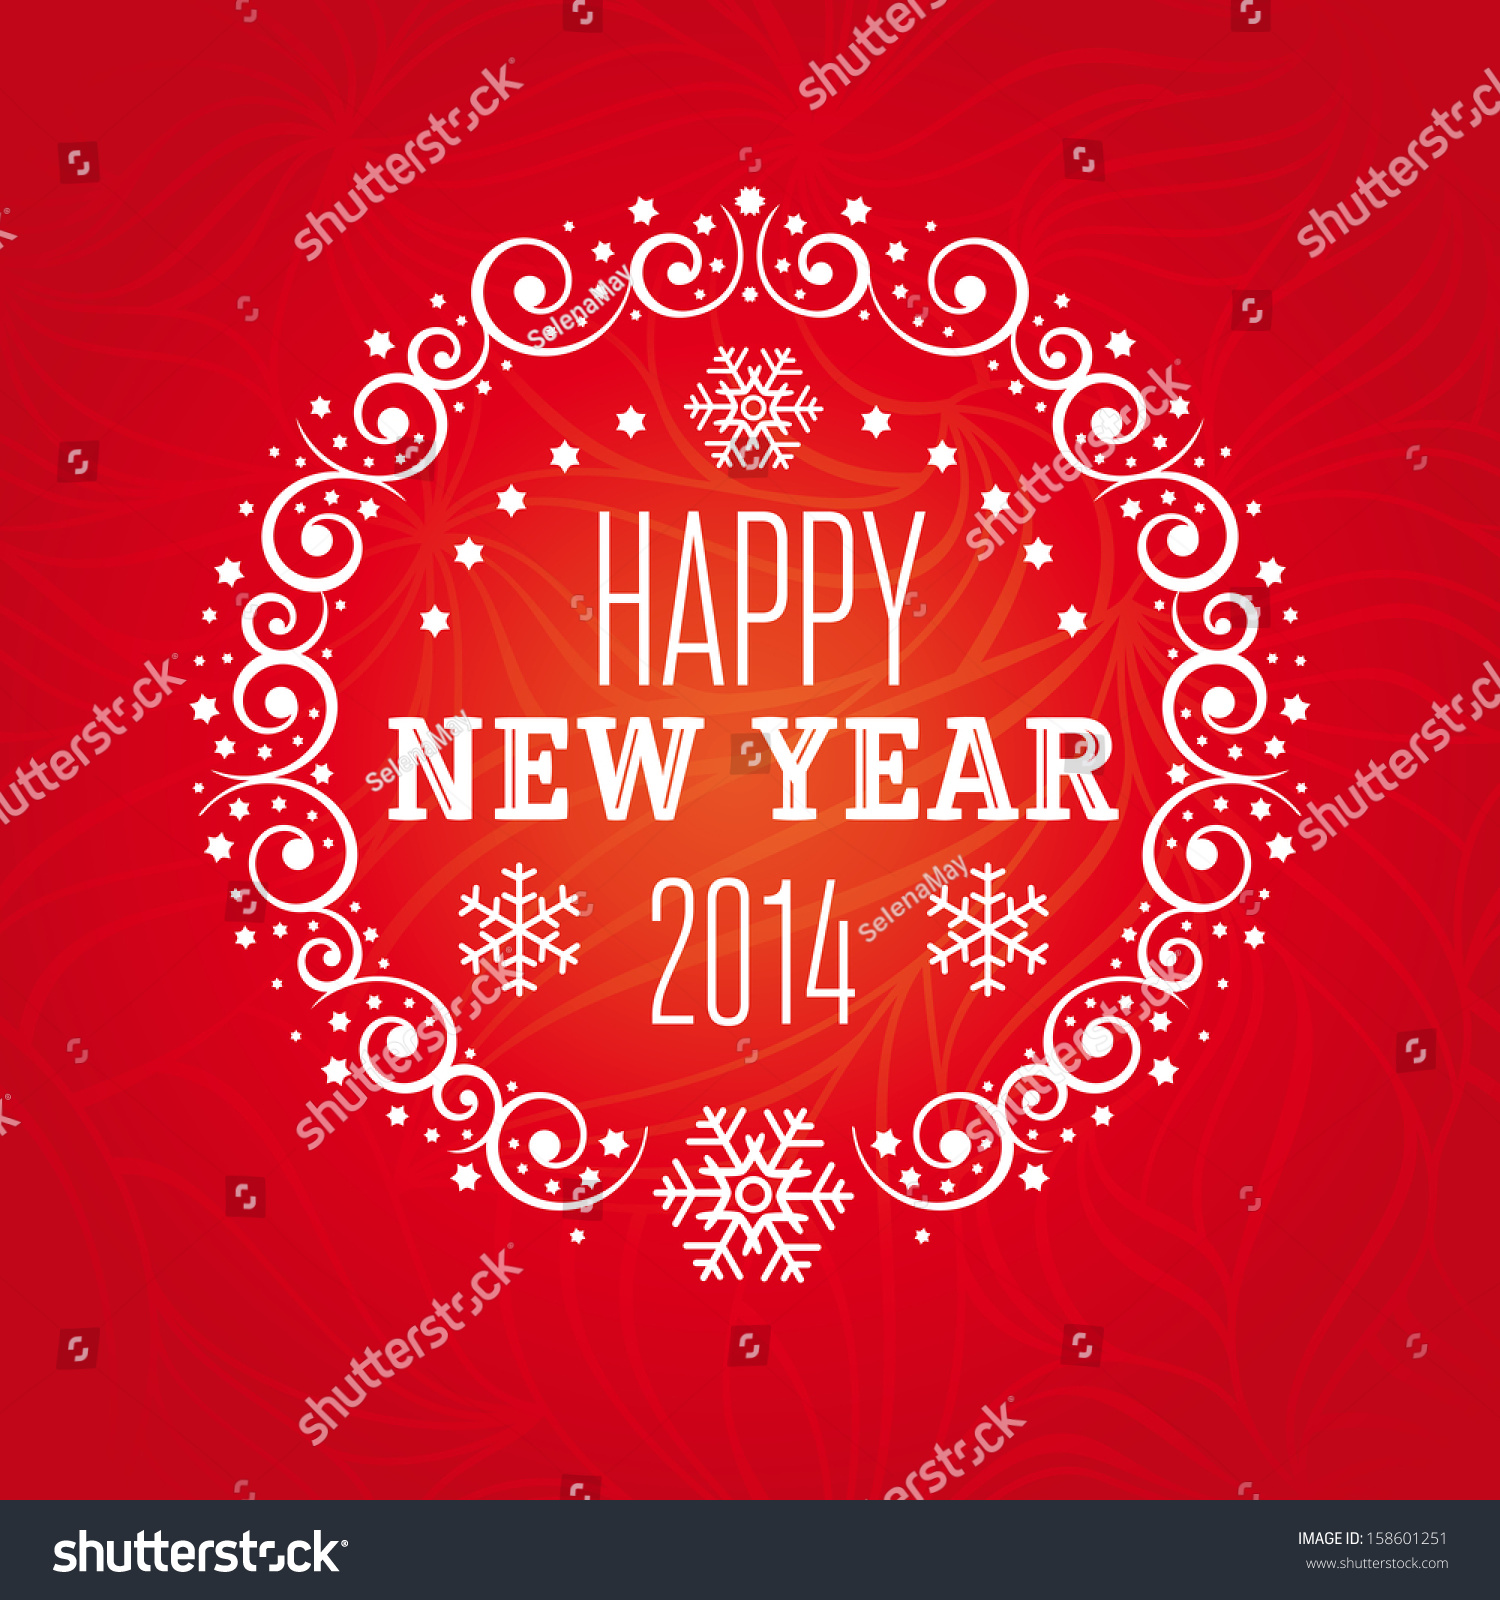 Happy 2014 New Year Greeting Card With Decorative Frame Snowflakes